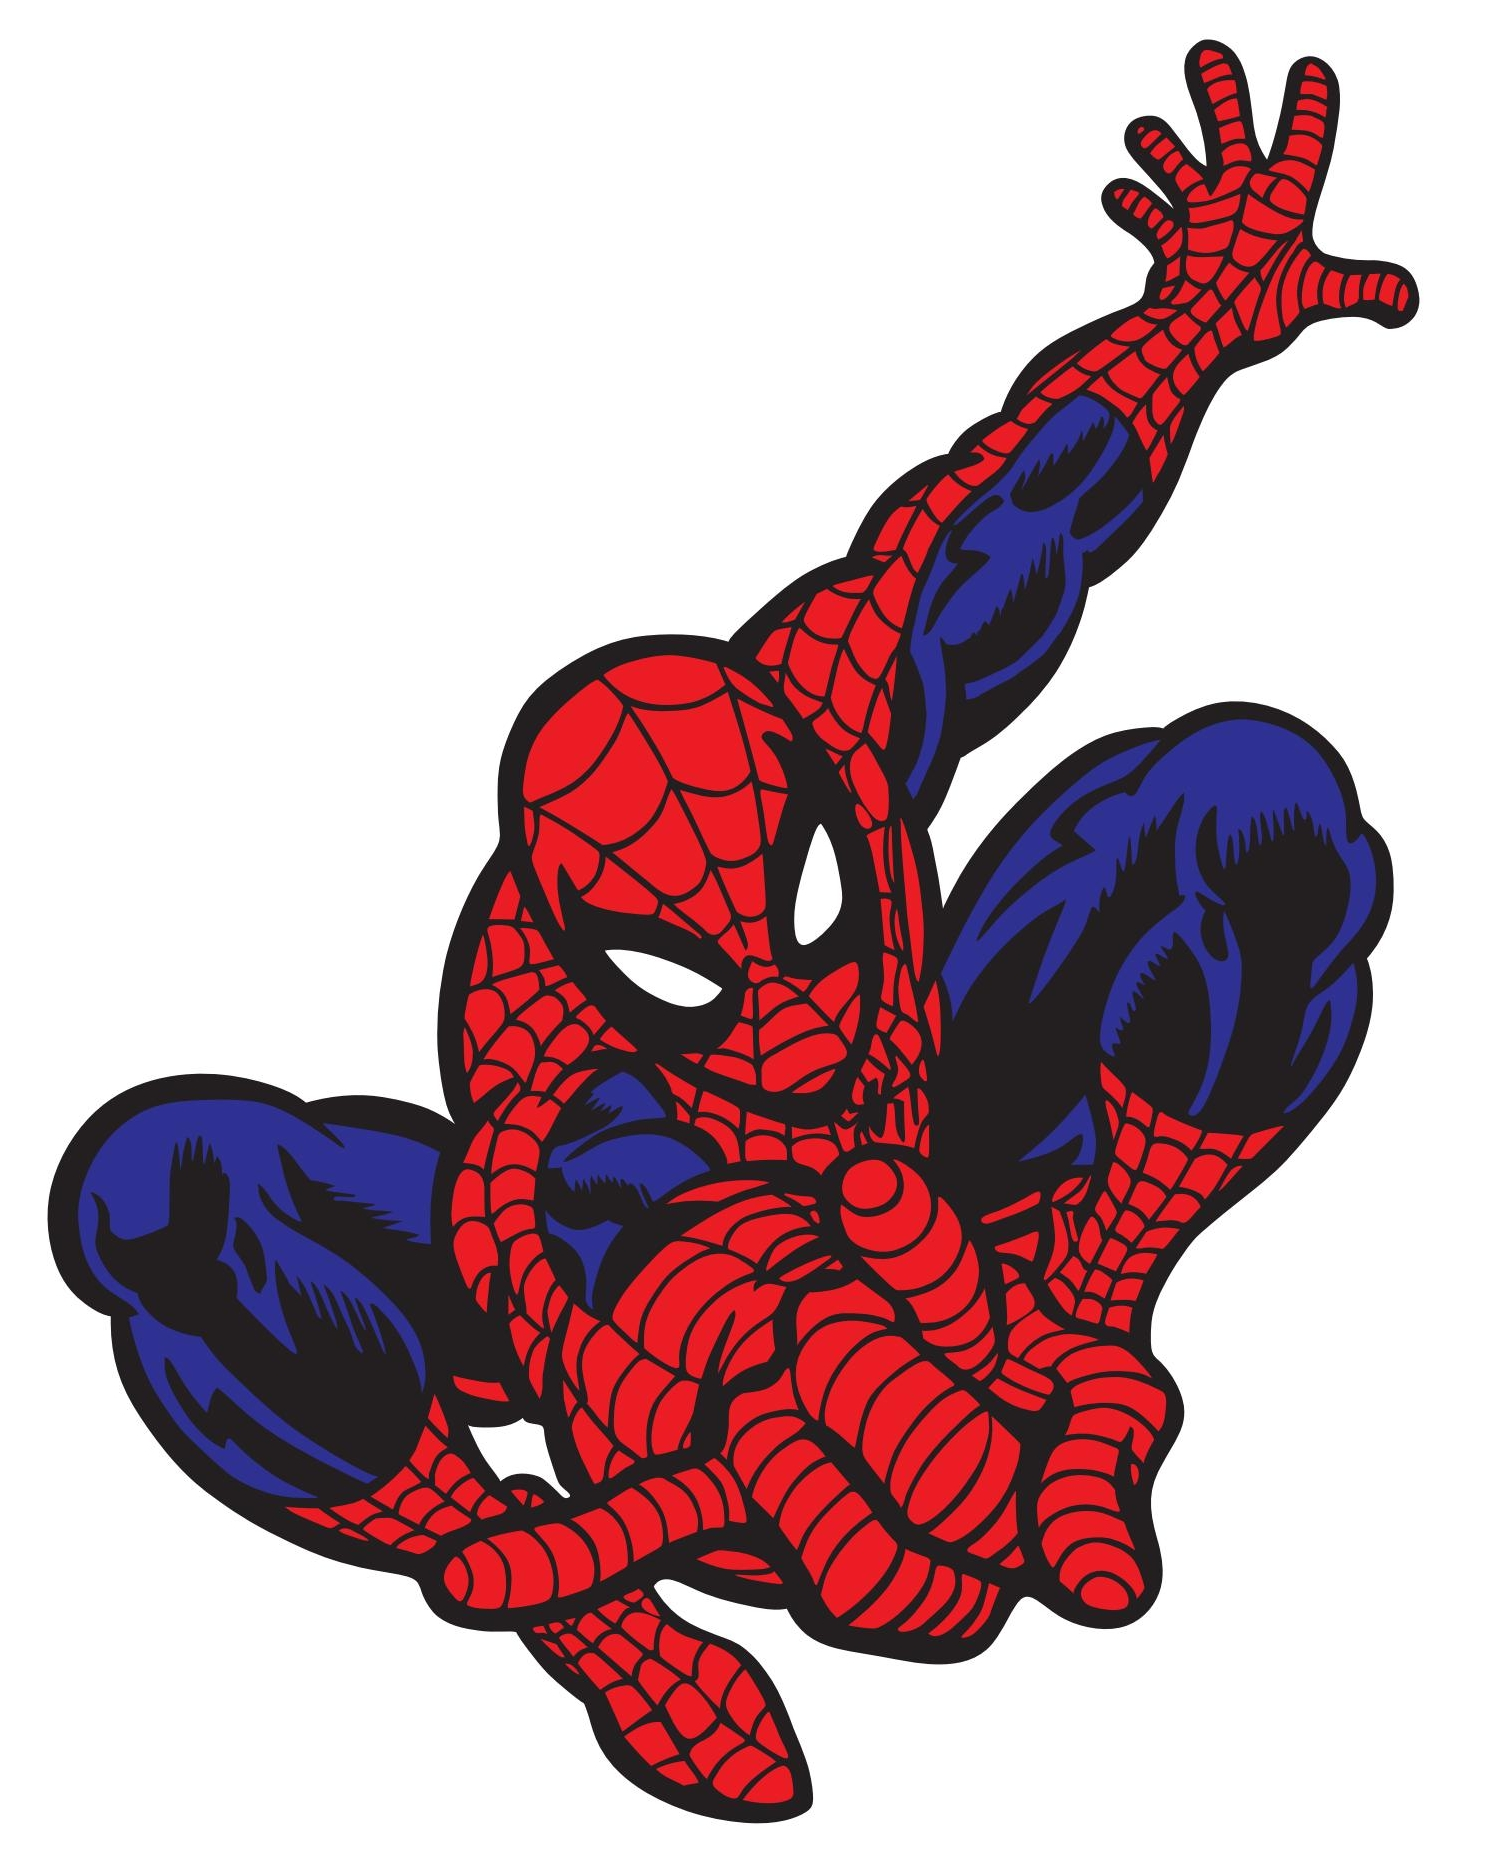 Spiderman clipart vector Spider [PDF] Download Brand Man